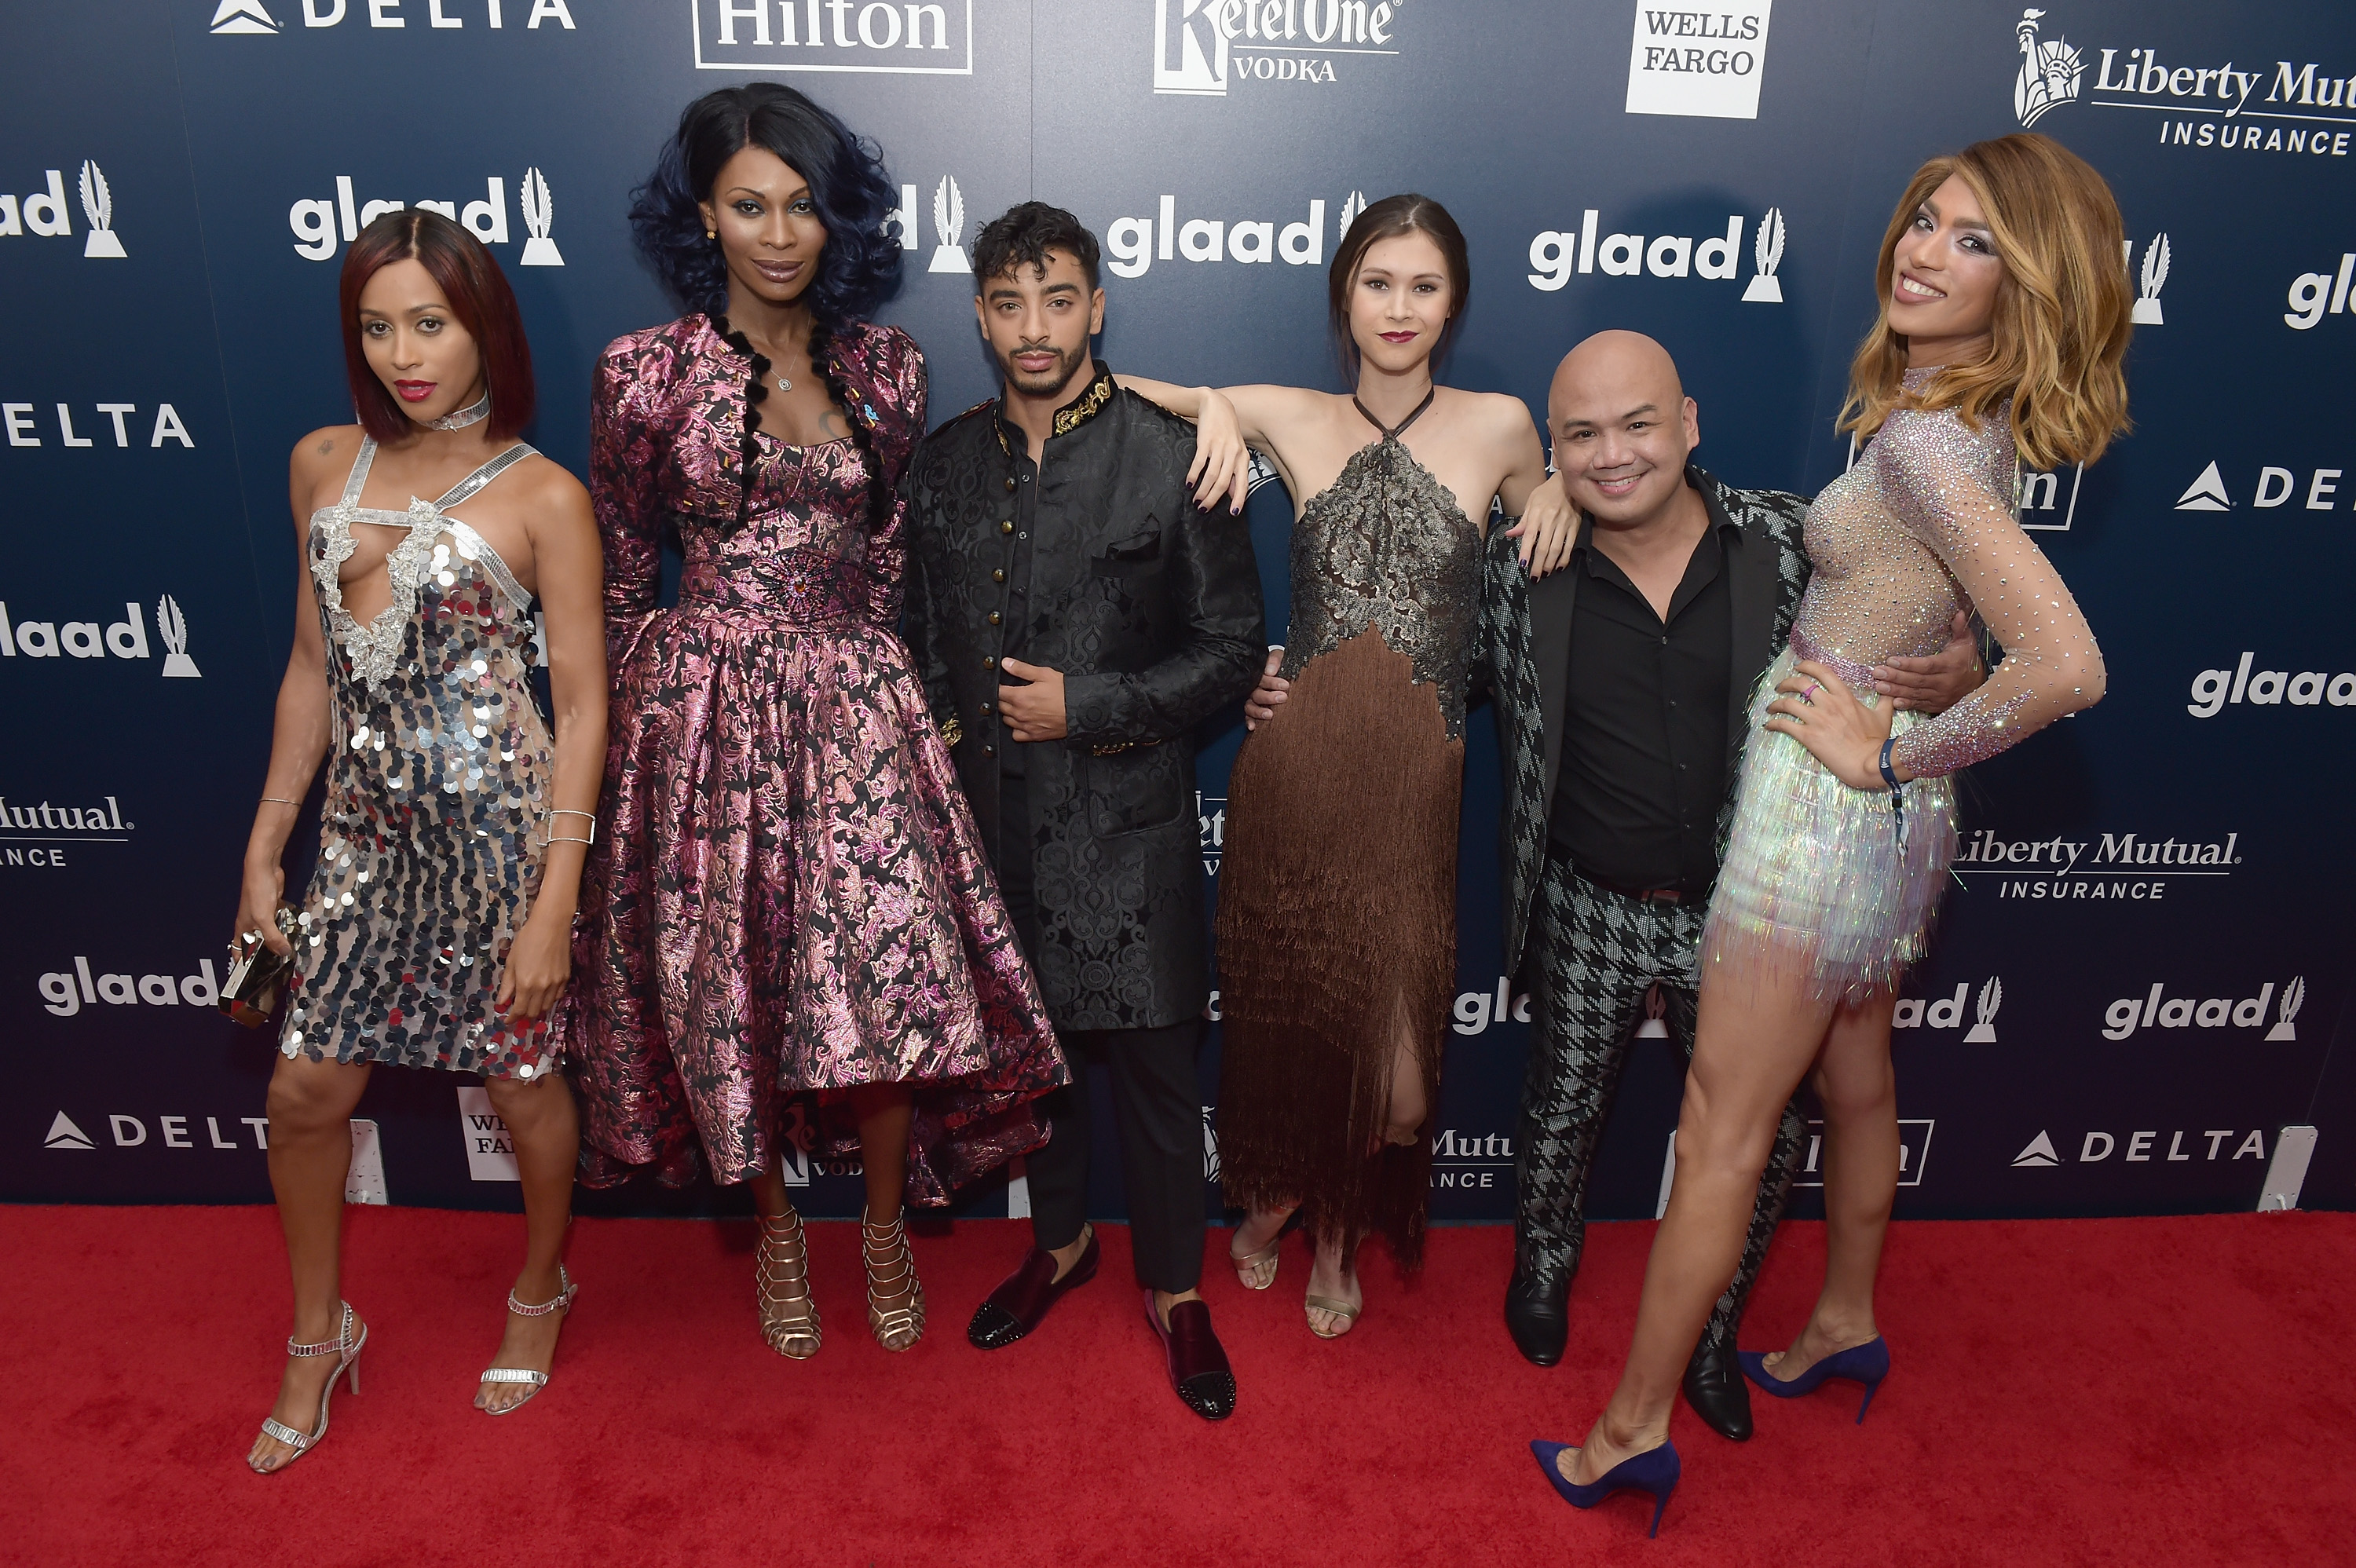 Nominees Isis King, Dominque Jackson, Laith De La Cruz, Ren Spriggs, Cecilio 'CeCe' Asuncion and Arisce Wanzer attends 28th Annual GLAAD Media Awards at The Hilton Midtown on May 6, 2017 in New York City.